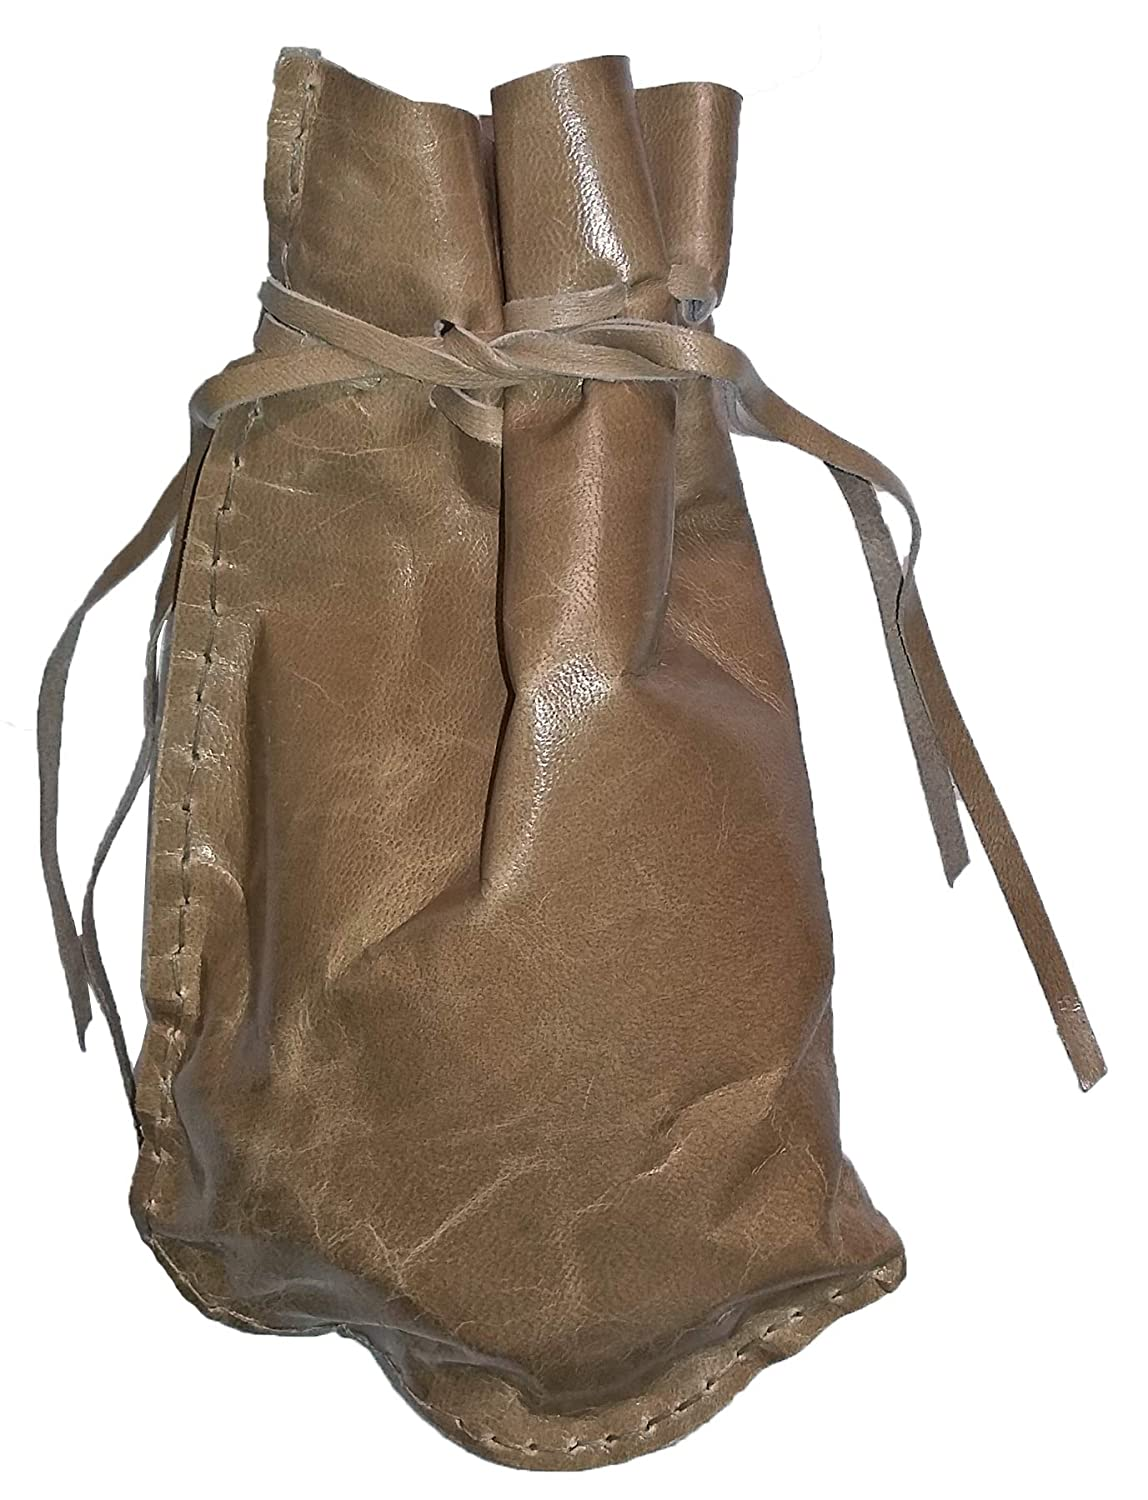 Pouch Drawstring Patterned Leather 5 X 7.5 Inches, Buckskin